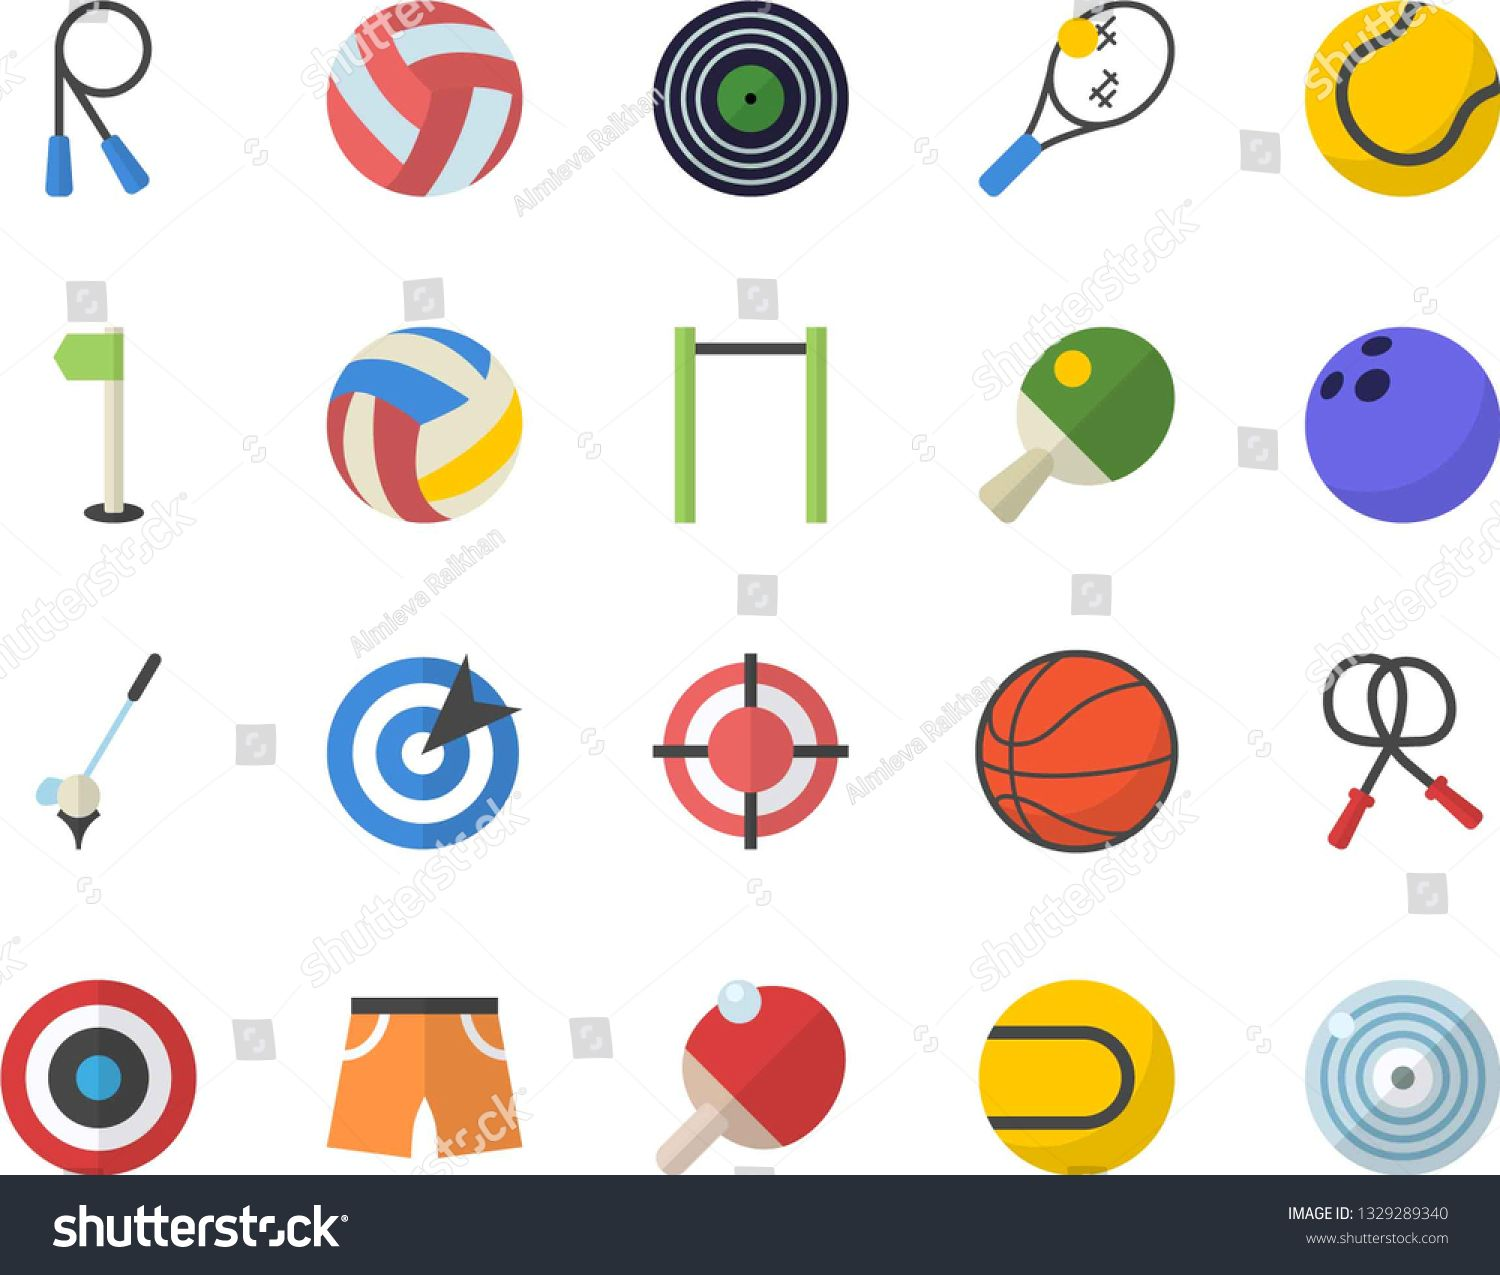 Color Flat Icon Set Target Flat Vector Bowling Ball Basketball Volleyball Skipping Rope Parallel Bars Athletic Short Flat Icons Set Icon Set Target Flats